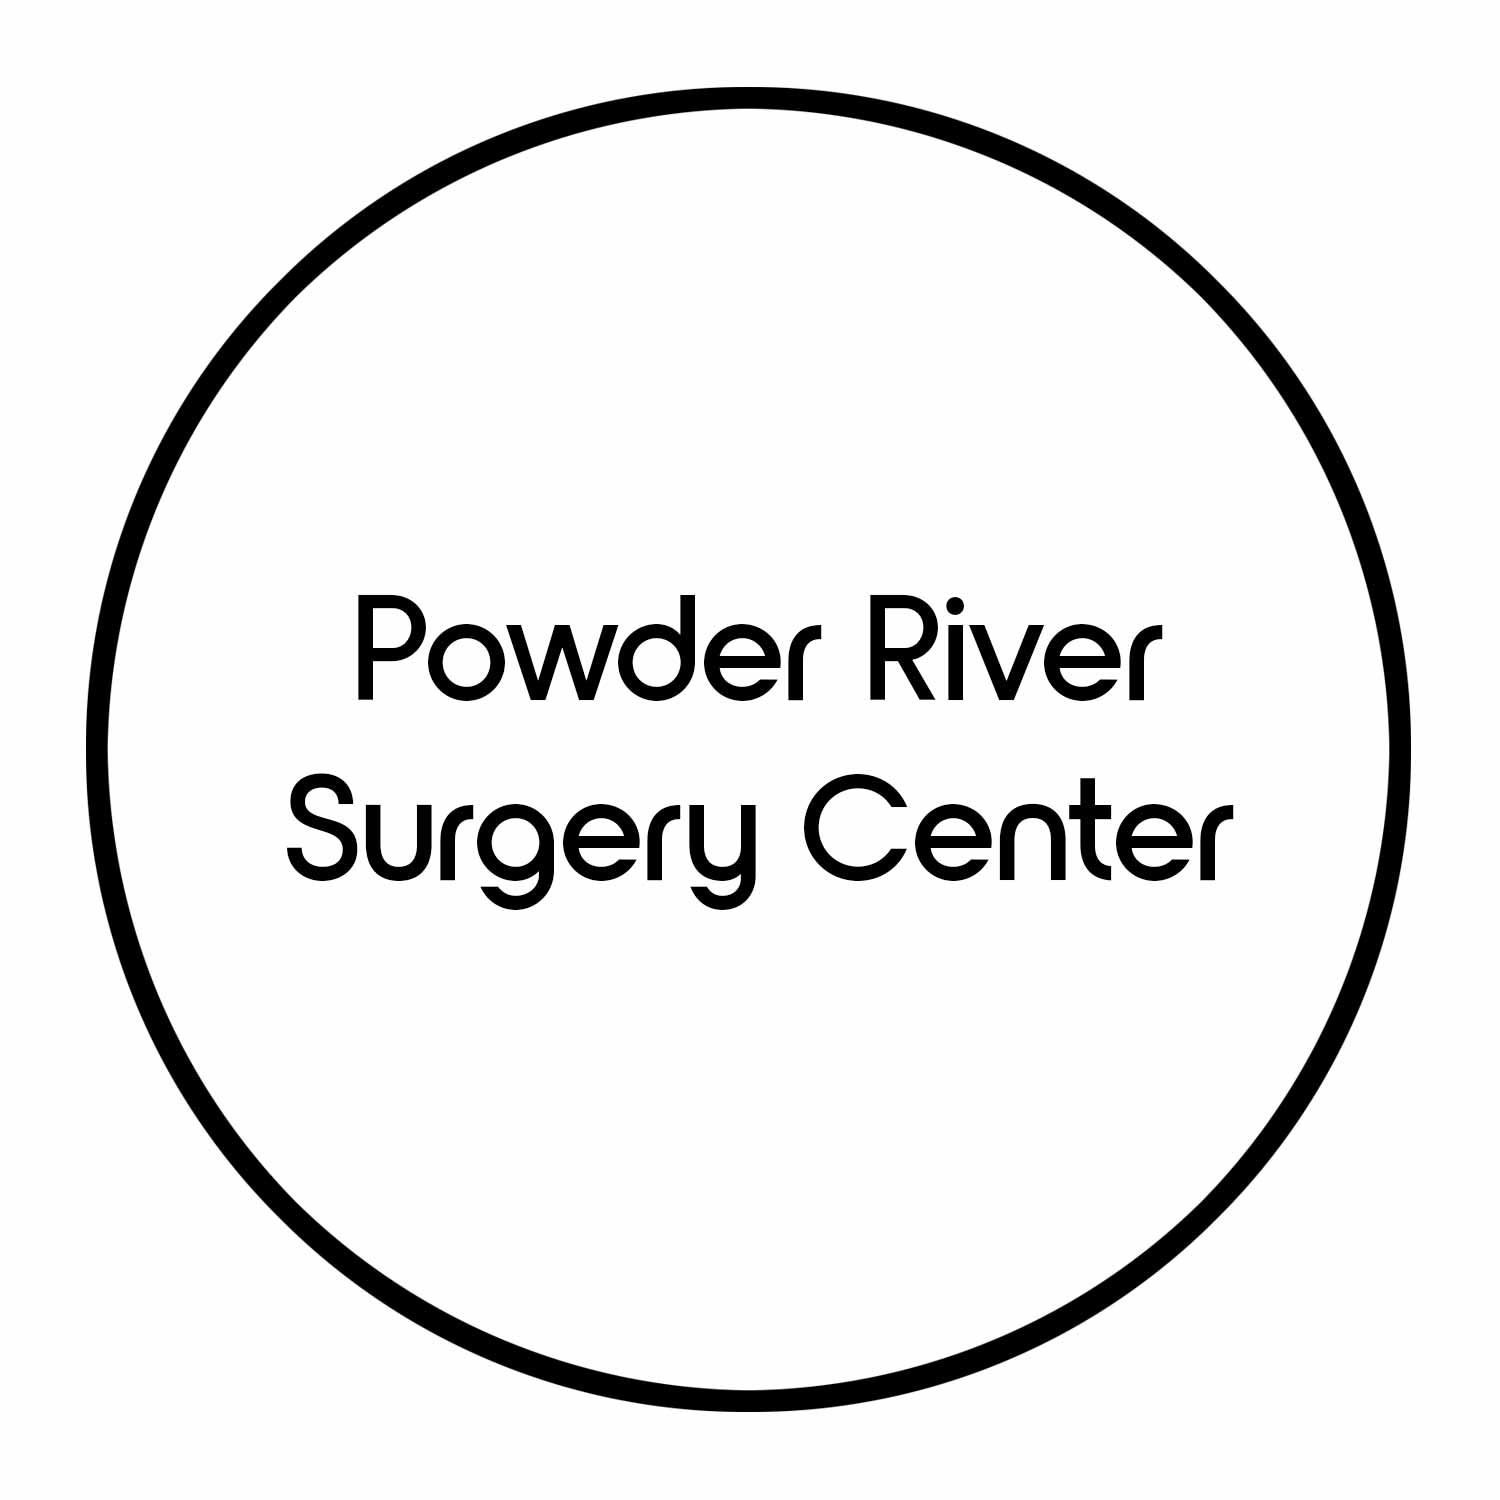 Powder-river-surgery-center.jpg